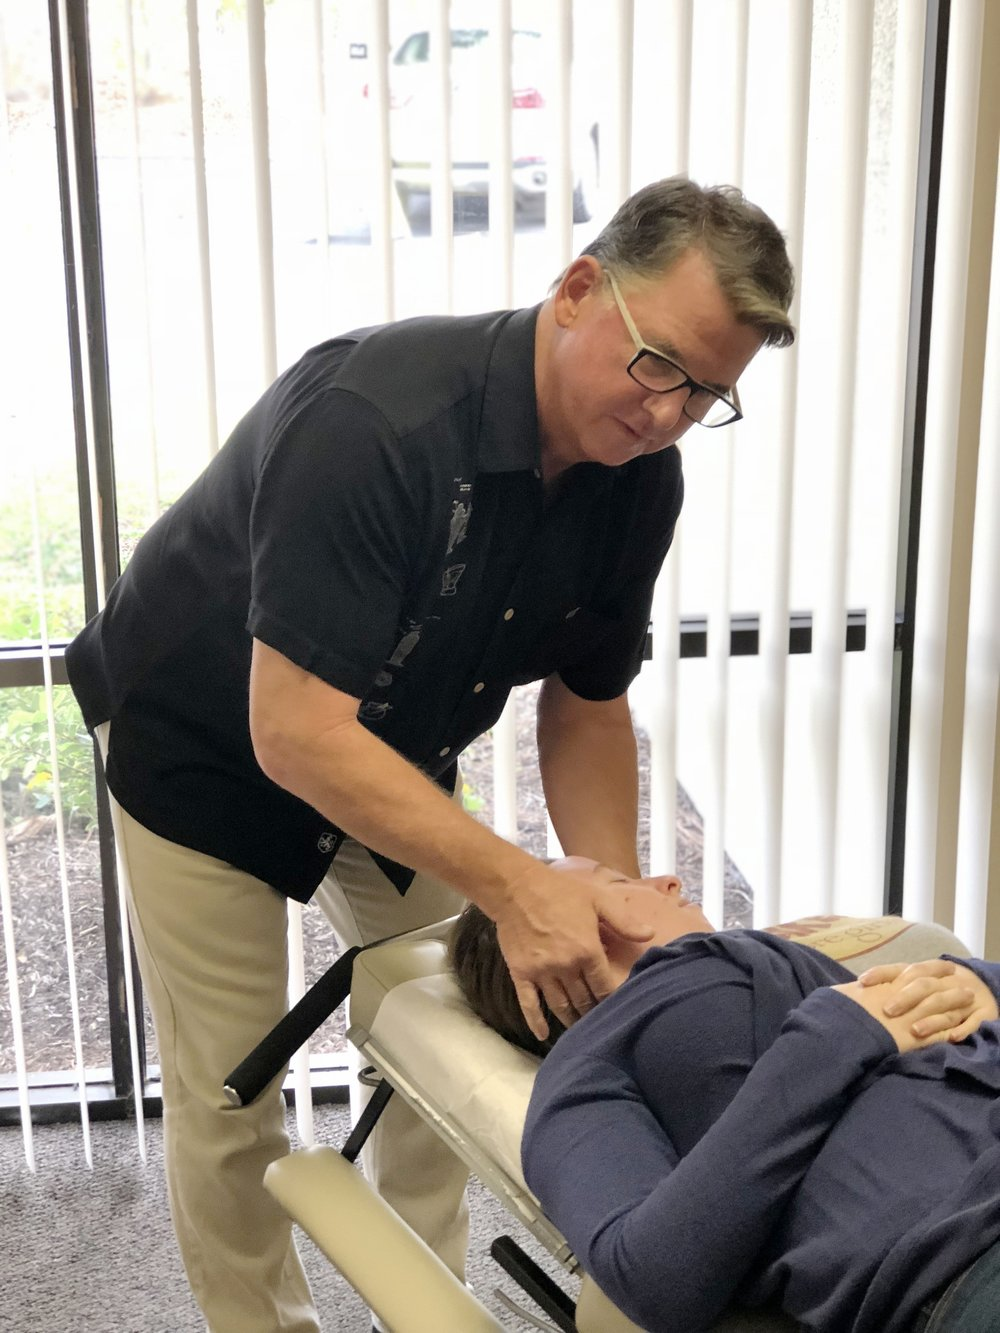 Let's get rid of pain. - Mission Hills Chiropractic in Lake Forest, CA is here to get people out of pain and feeling happy and healthy again through chiropractic adjustments, acupuncture, massage, sharing health tips and more.New with us? Book here and enjoy a complementary consultation! We also verify insurance for free too.